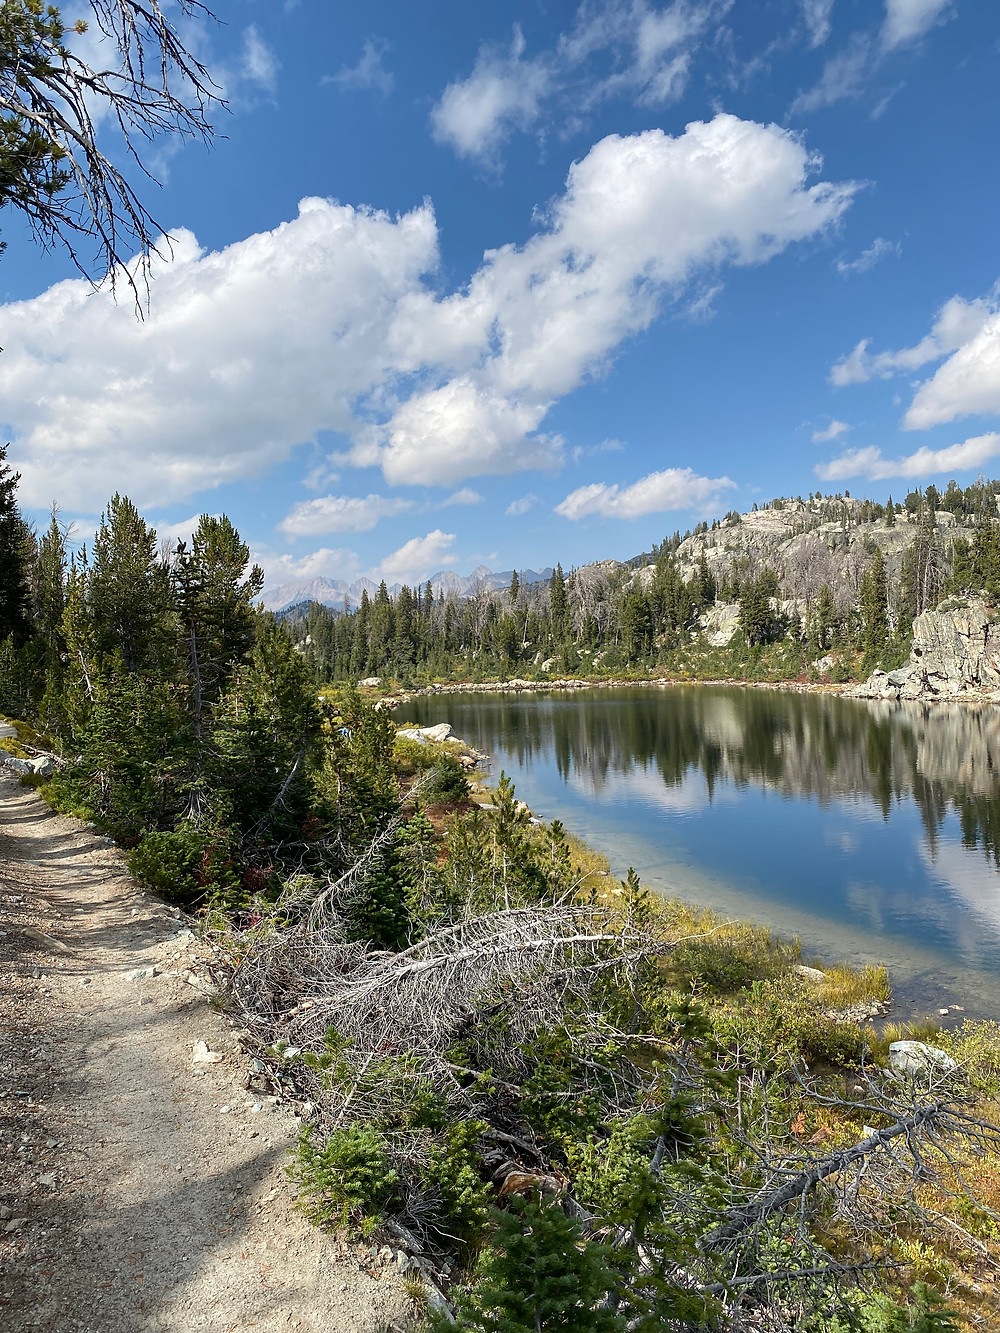 Hobbs Lake is another crystal clear perfectly reflective body of water in Bridger-Teton National Forest in Wyoming